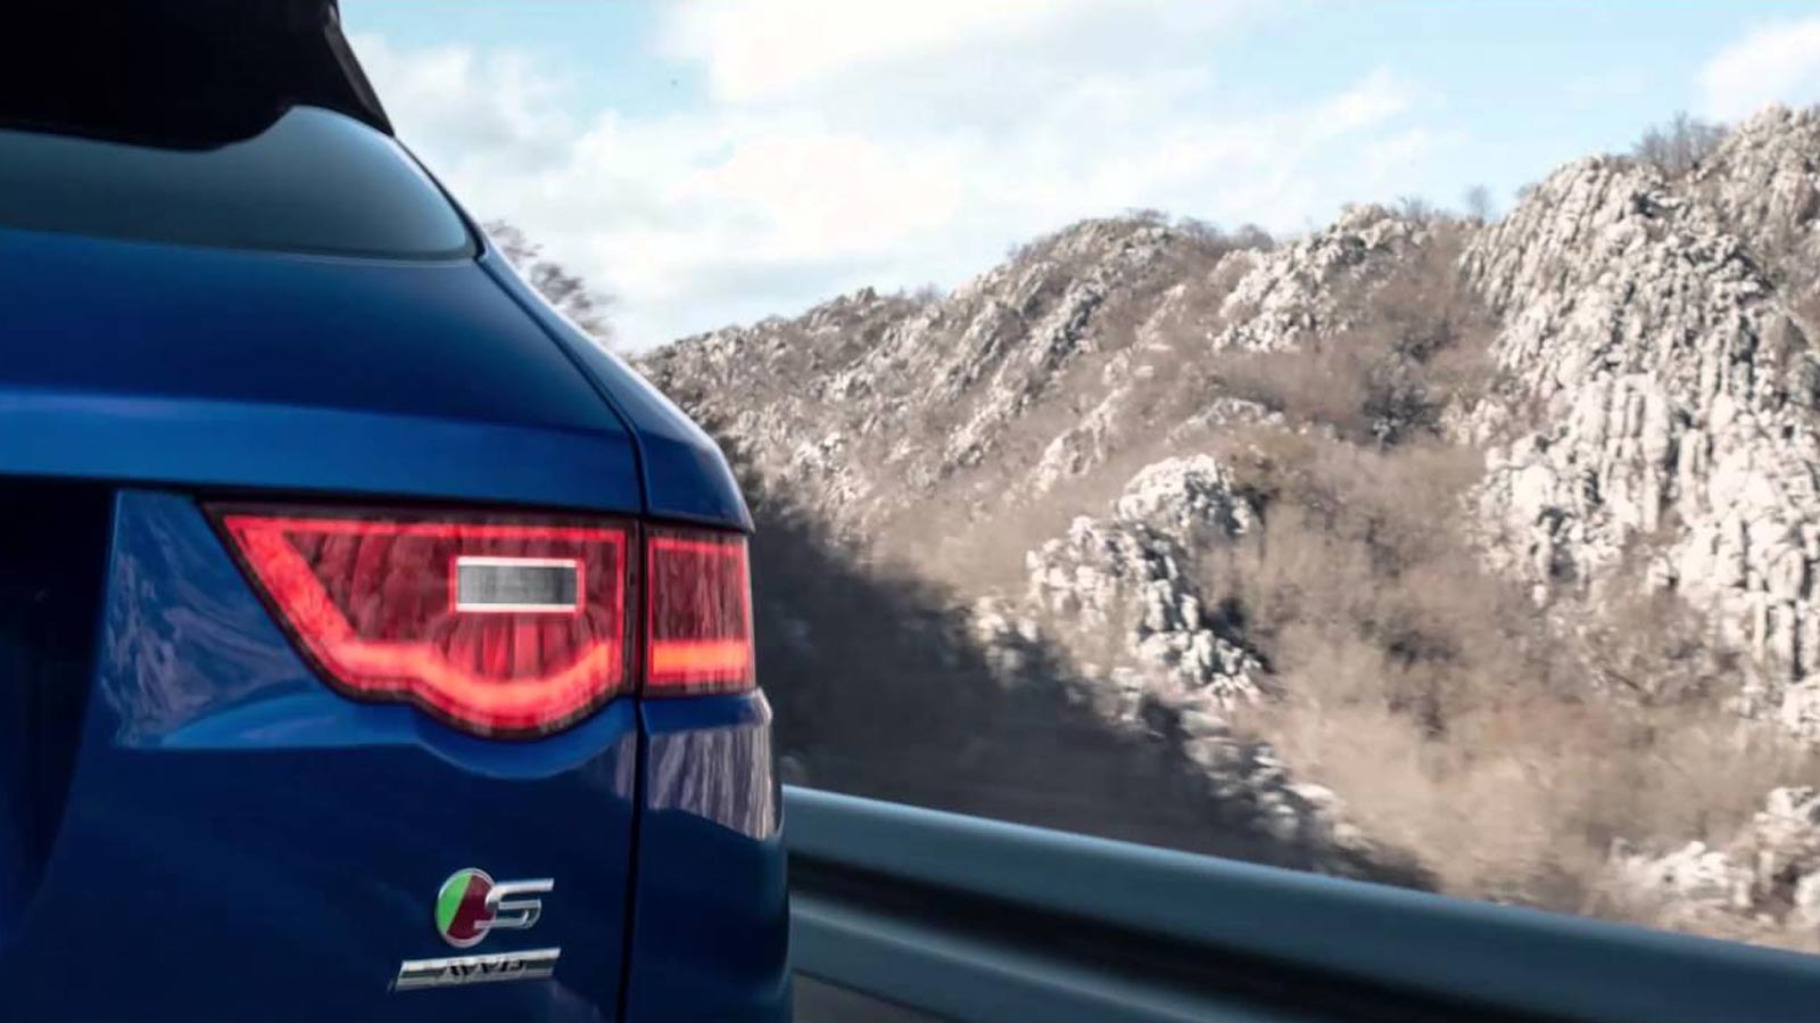 F-pace driving on a road by a mountain.